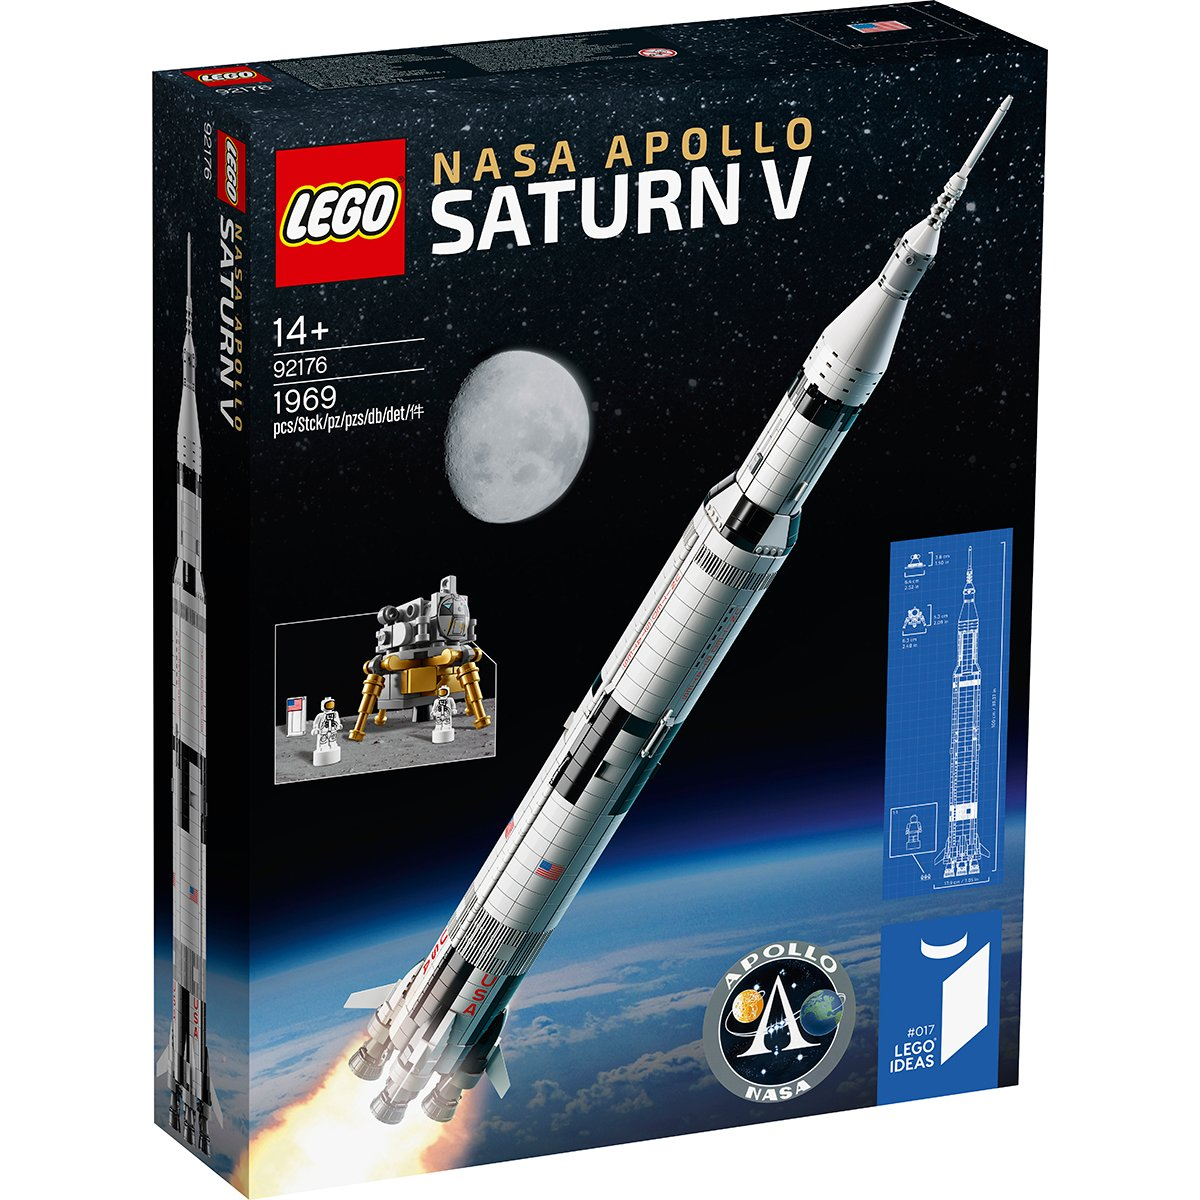 LEGO® Ideas - NASA Apollo Saturn V (92176)